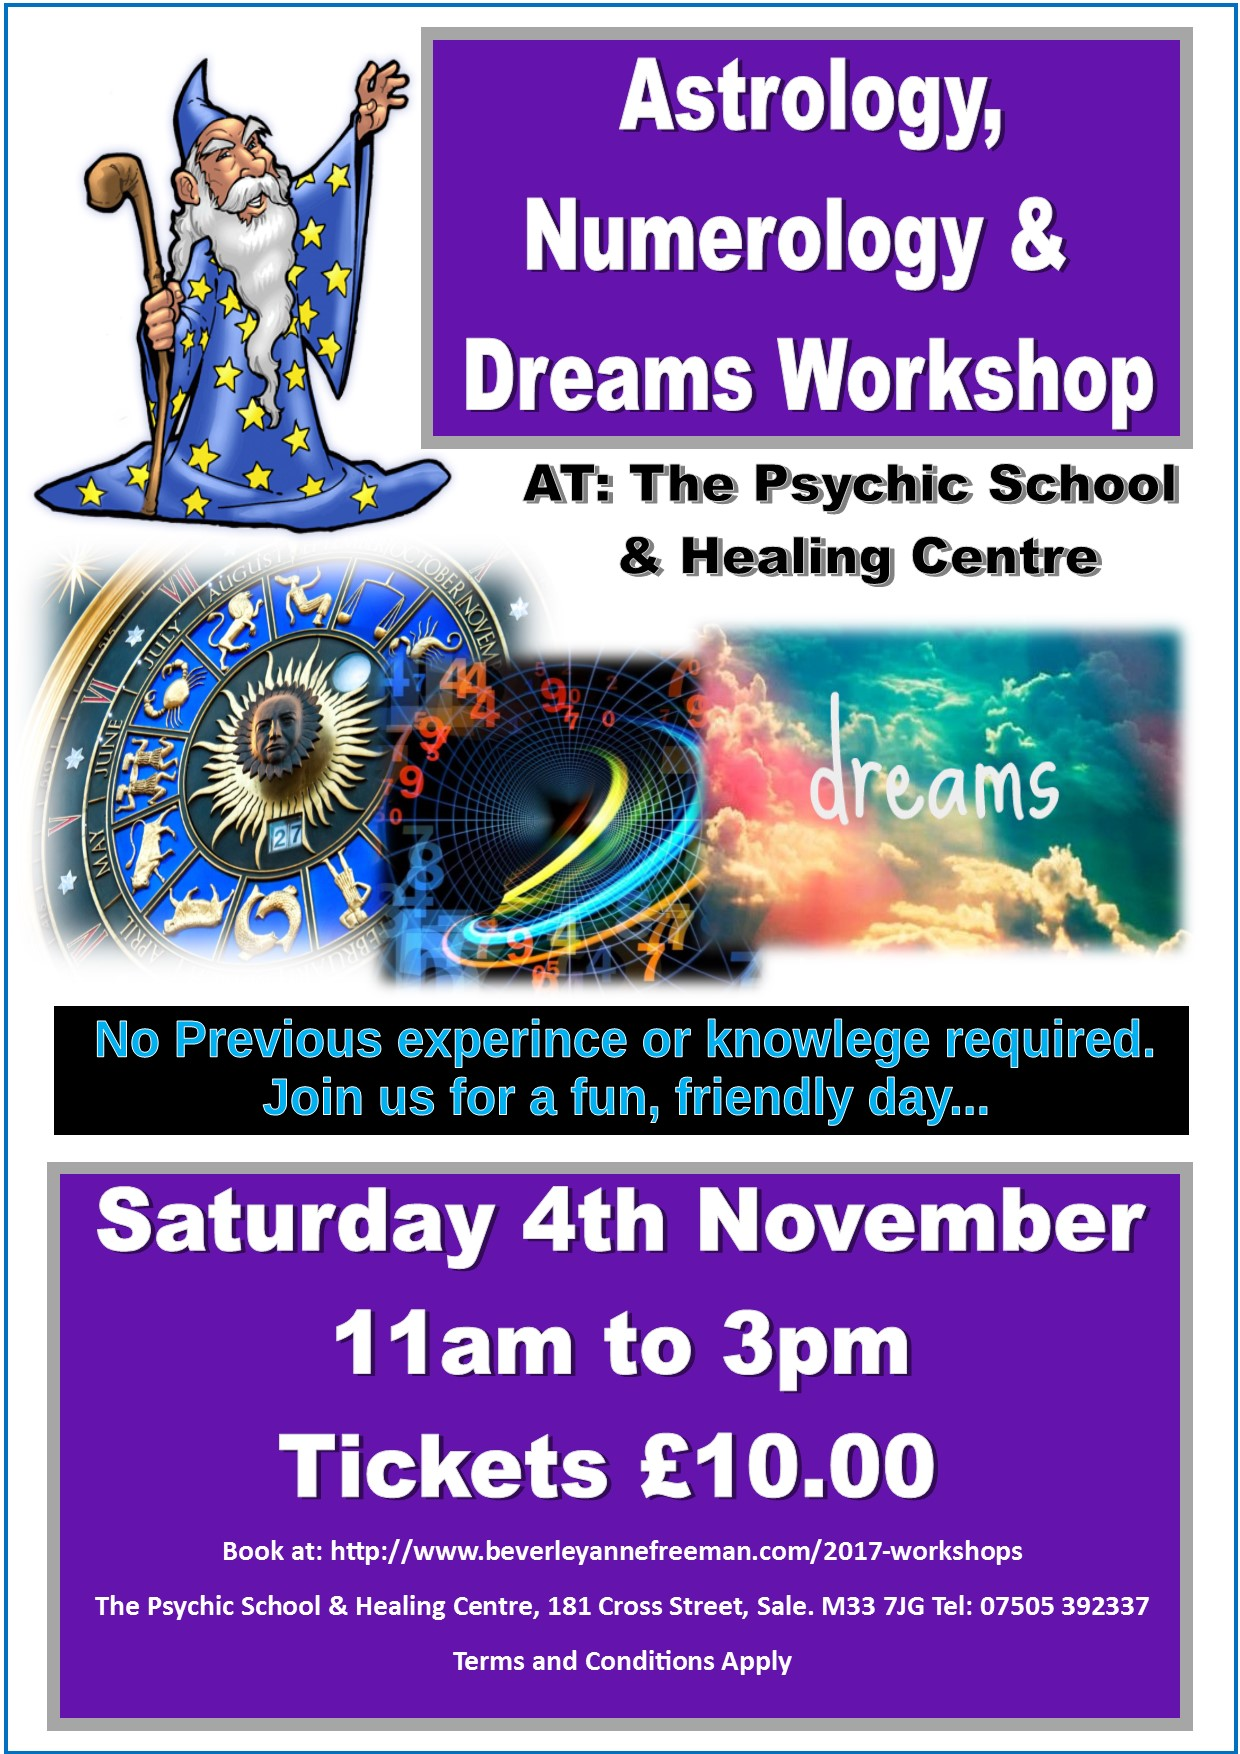 Astrology, Numerology & Dreams Workshop